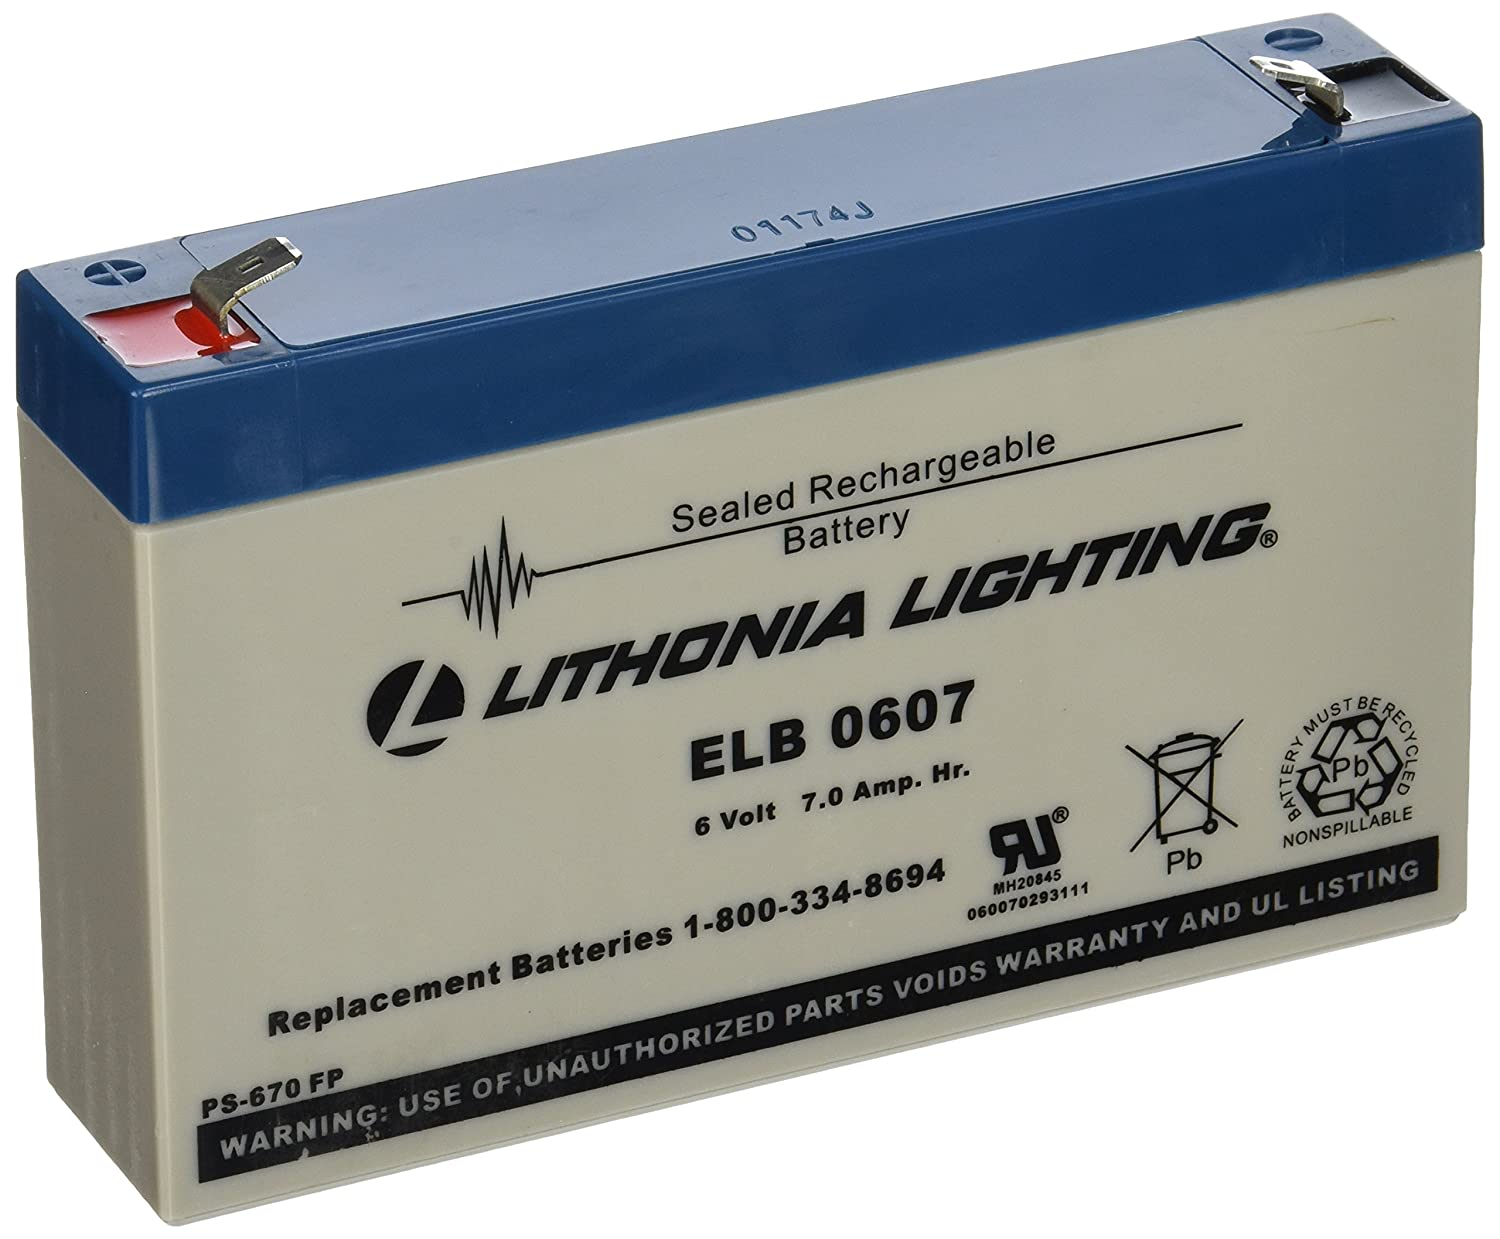 Amazon.com Lithonia Lighting ELB 06042 6V Emergency Replacement Battery Home Improvement  sc 1 st  Amazon.com & Amazon.com: Lithonia Lighting ELB 06042 6V Emergency Replacement ... azcodes.com